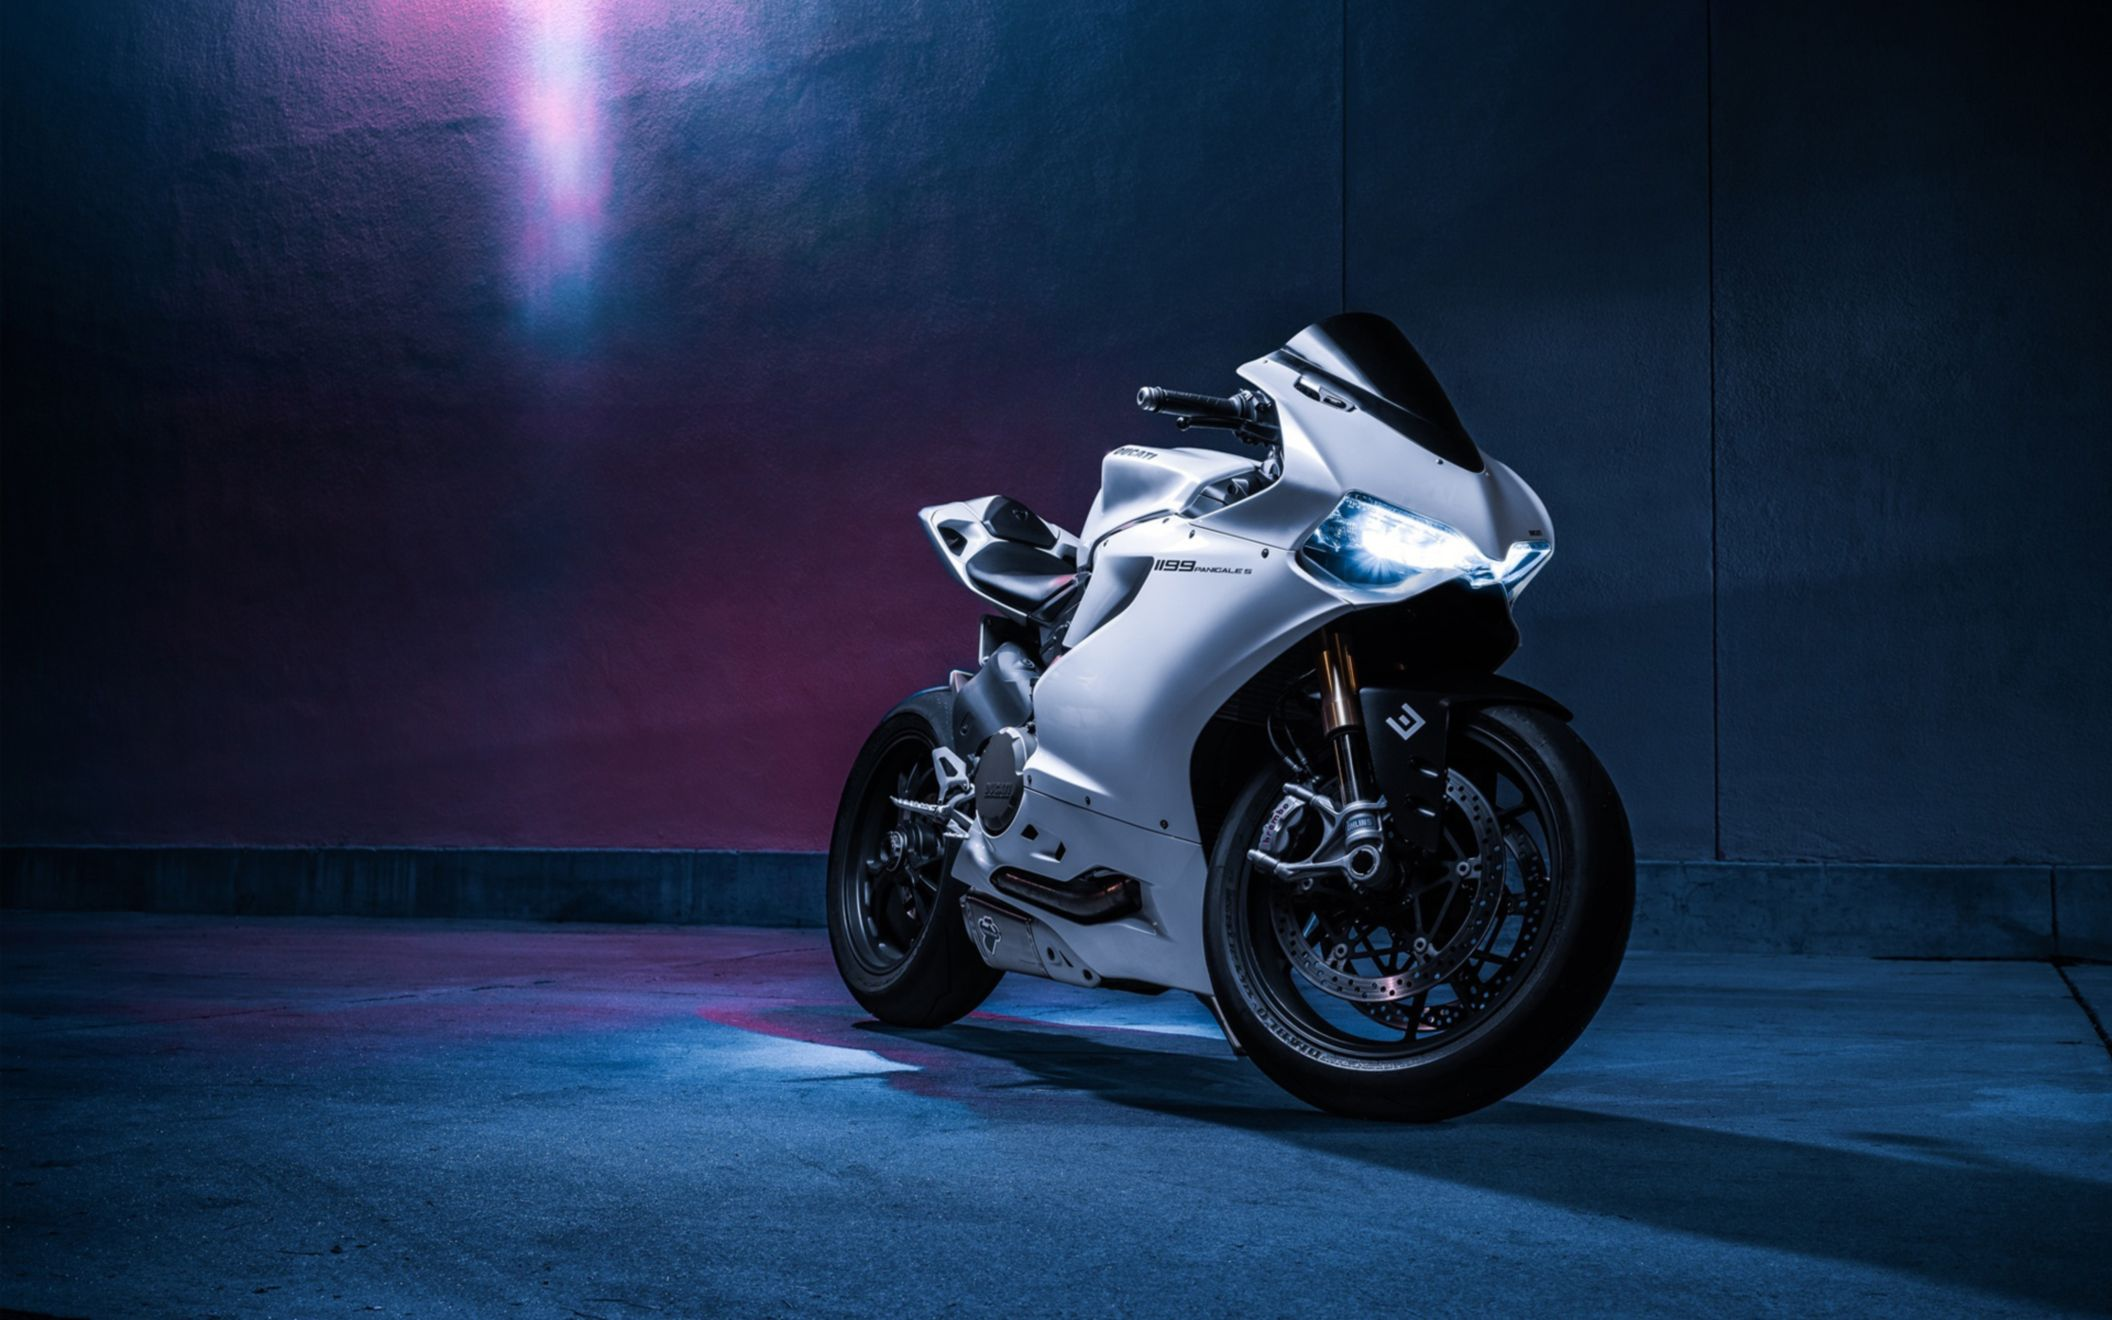 Download free HD Ducati 1199 Panigale S Wide Wallpaper, image